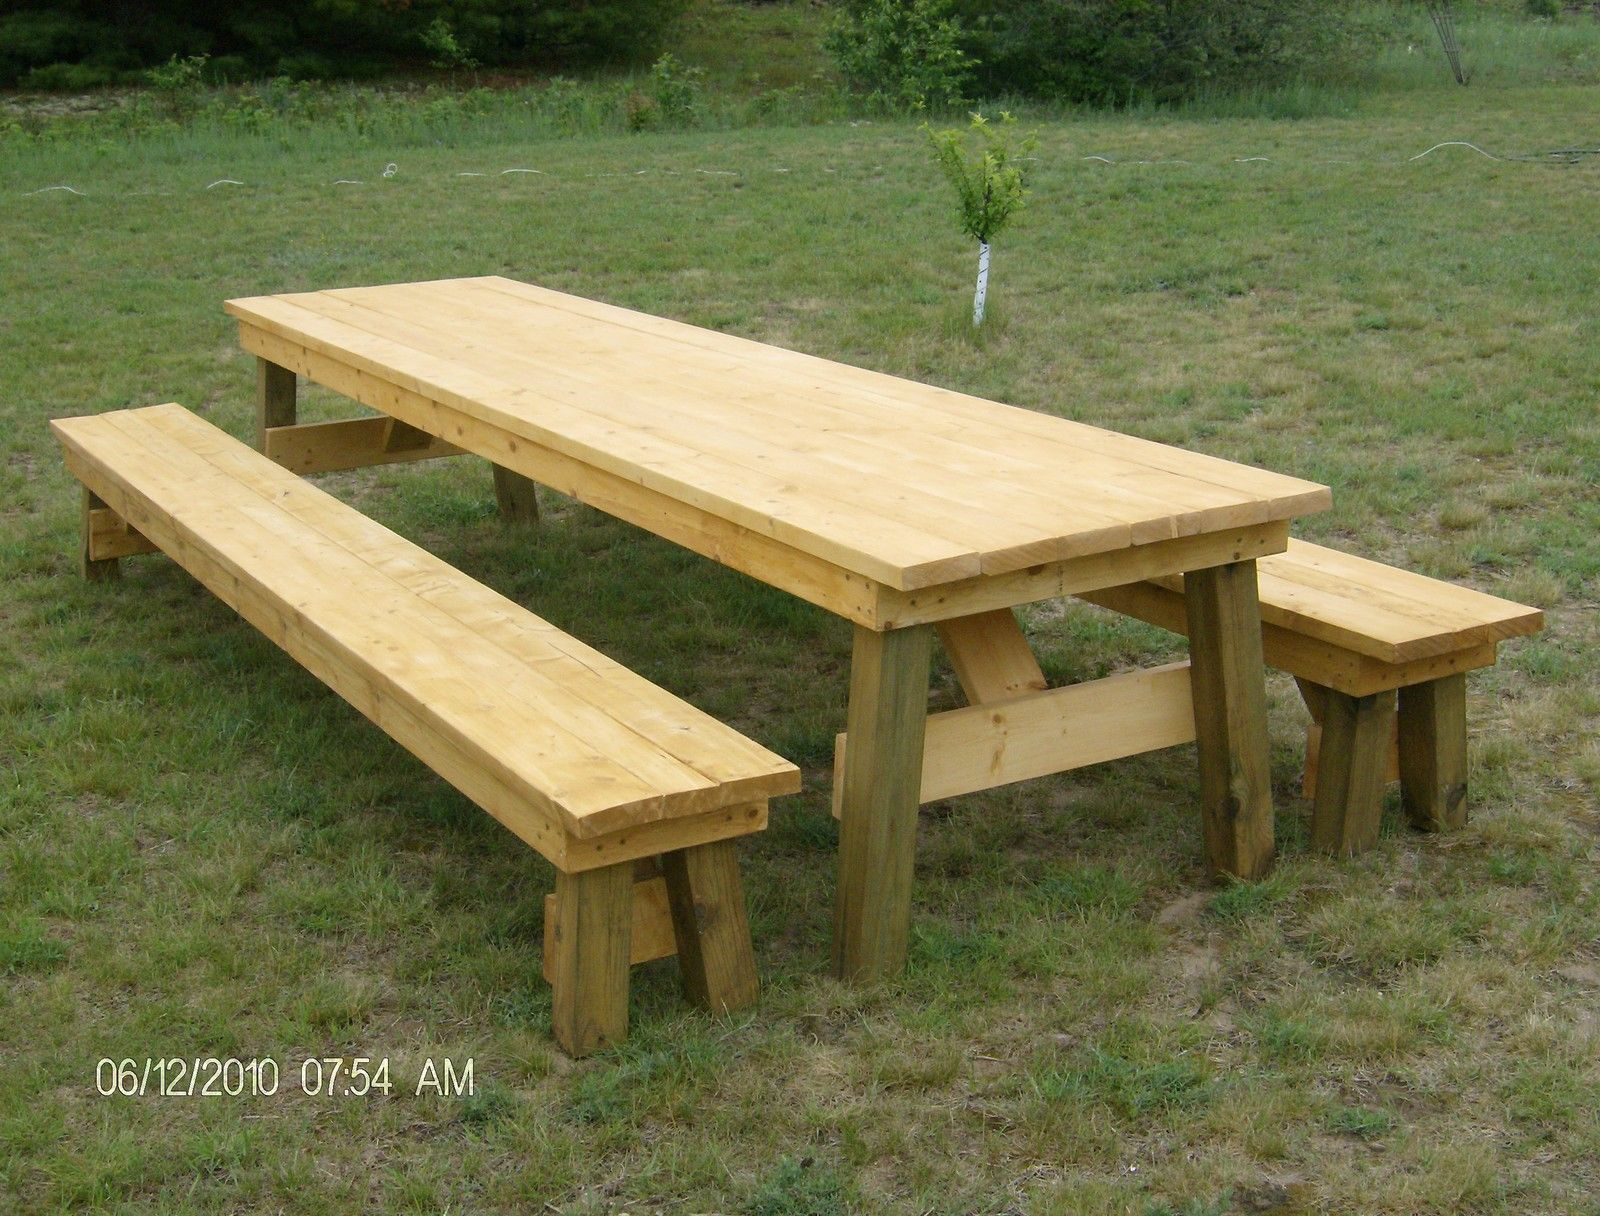 Delightful Picnic Bench Ideas Part - 1: Classic Picnic Table With Separate Benches Plan-How To Build It Yourself!  In Home U0026 Garden, Home Improvement, Building U0026 Hardware